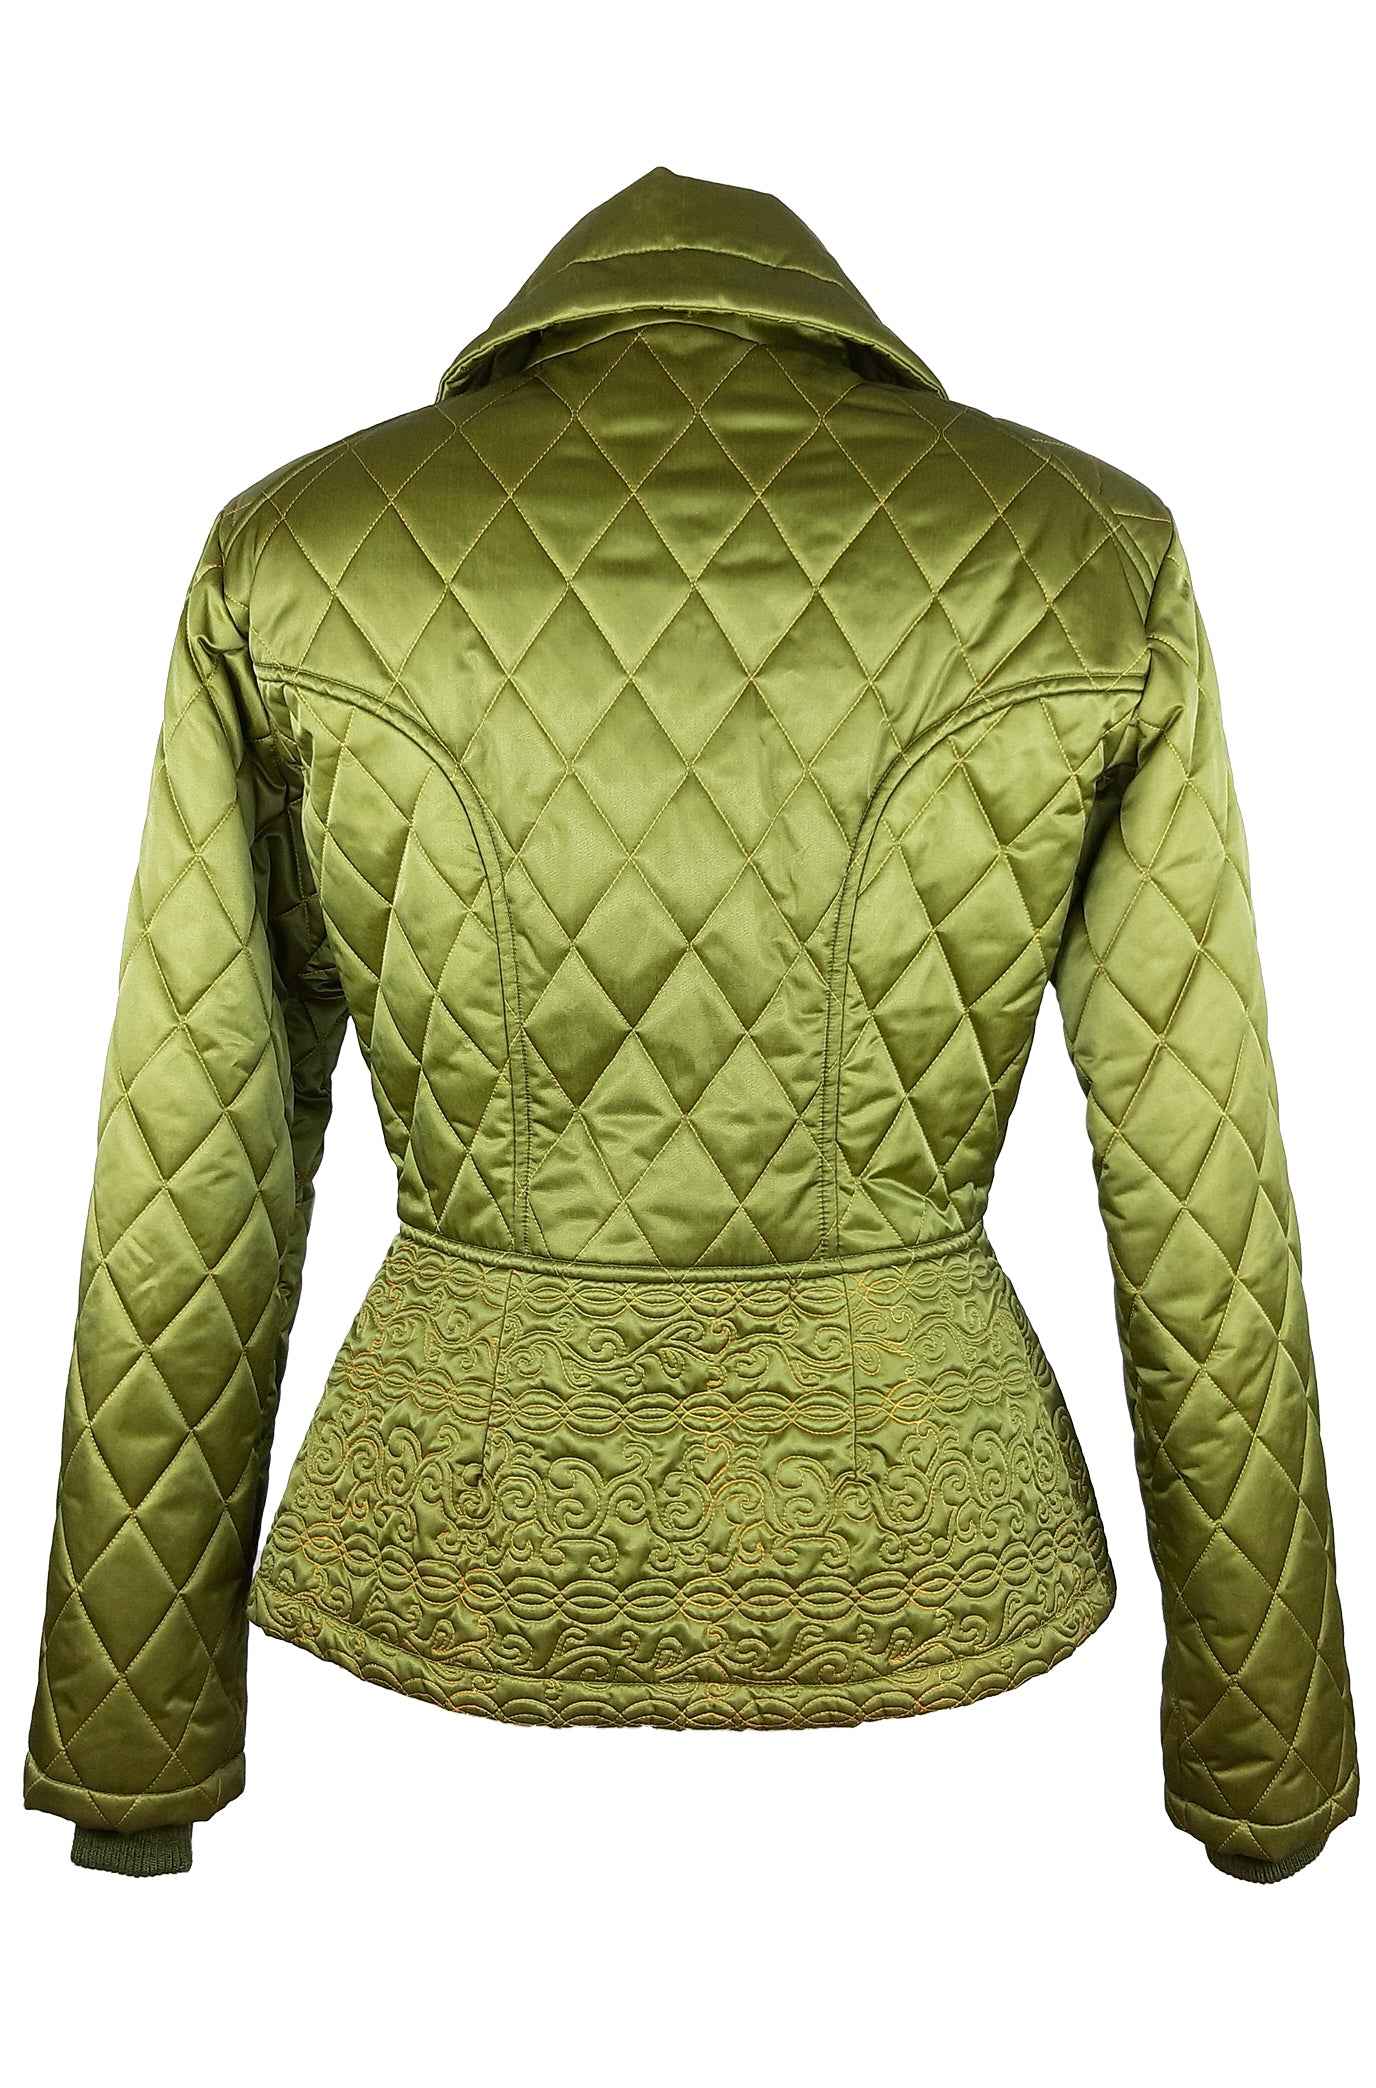 Bazar de Christian Lacroix Green Coat with Yellow Stitch detail Size 38 (EU)